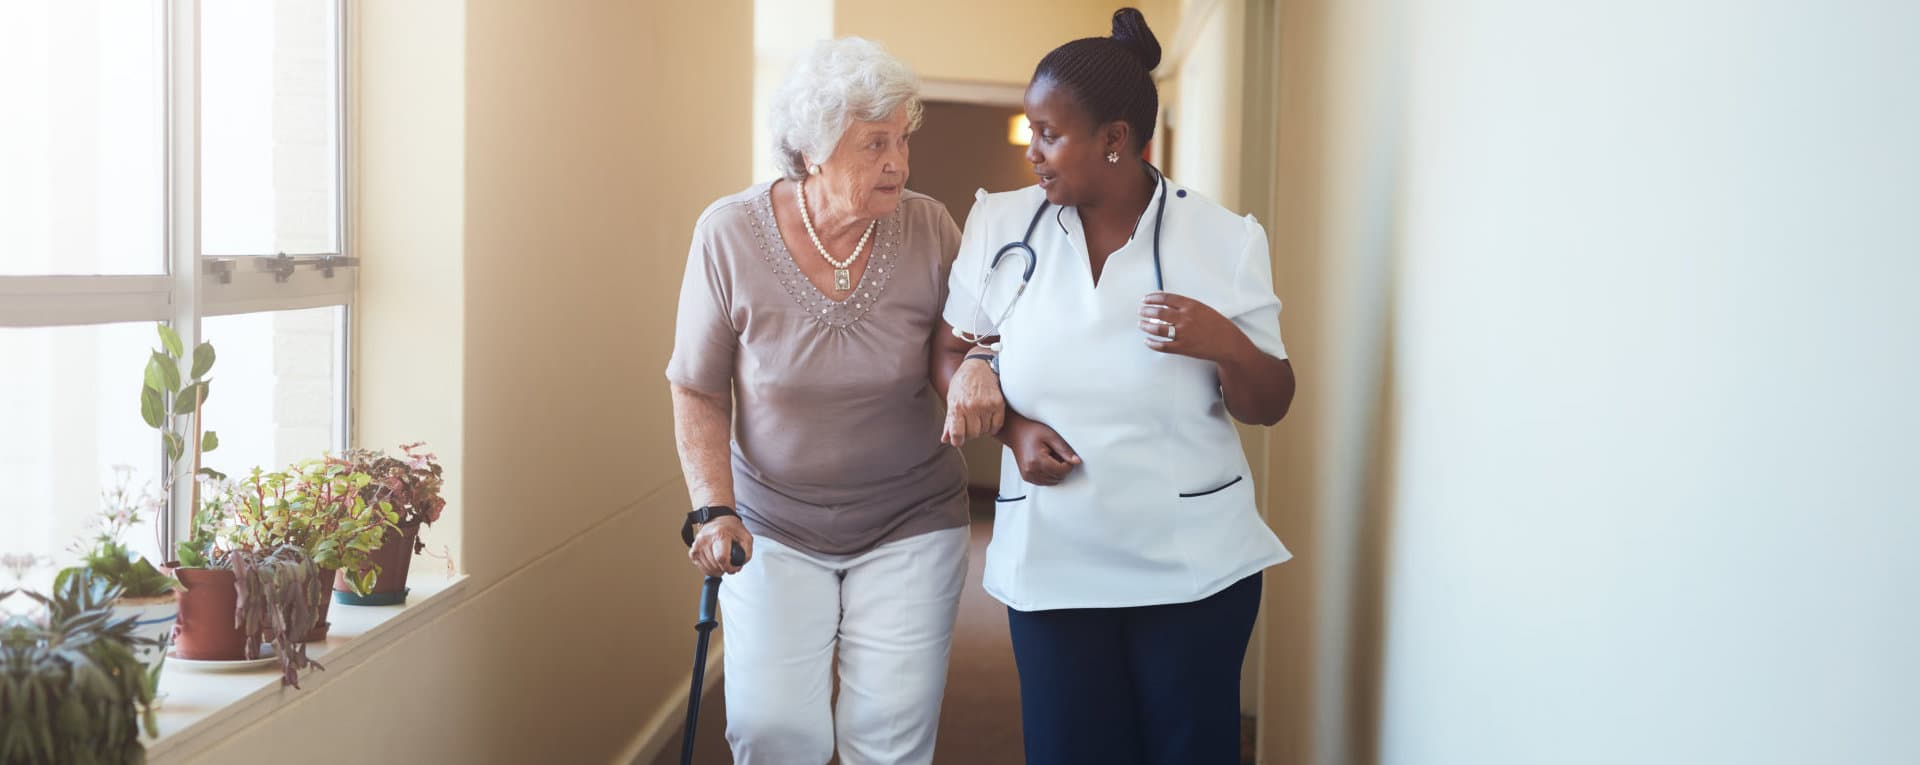 nurse assisting an old woman